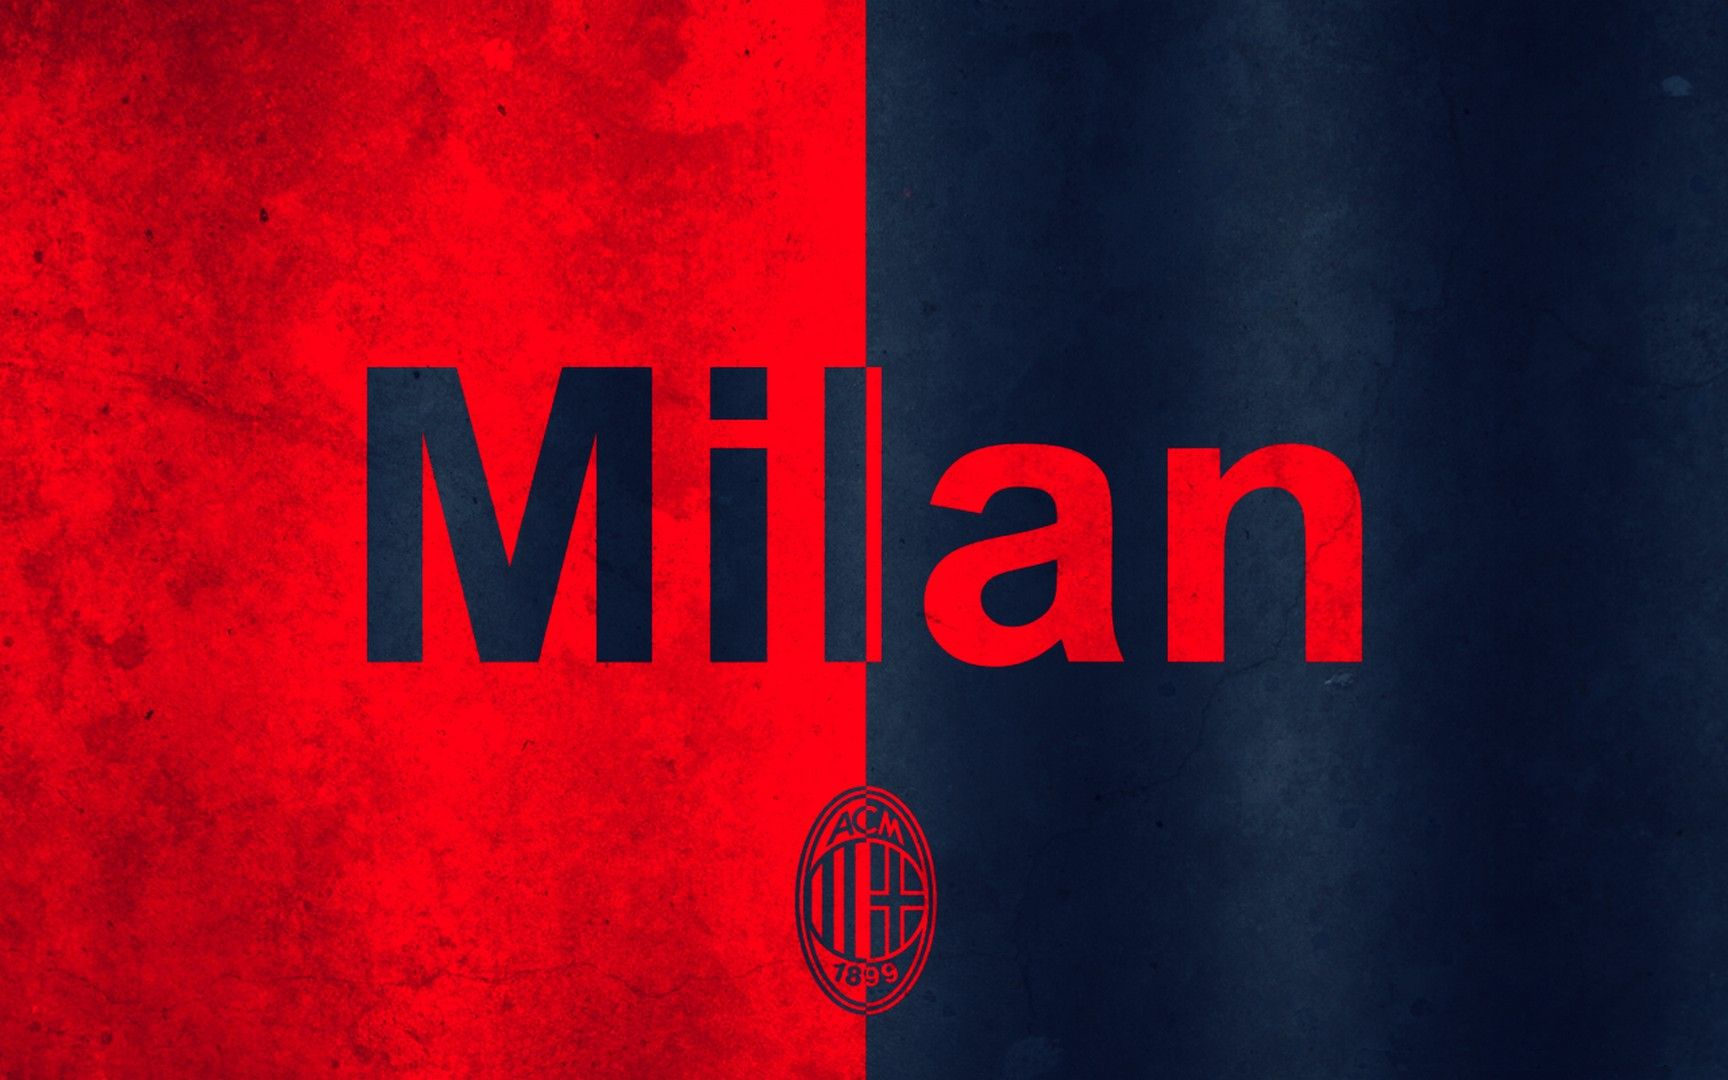 Ac Milan Wallpaper Milan Wallpaper Milan Football Ac Milan